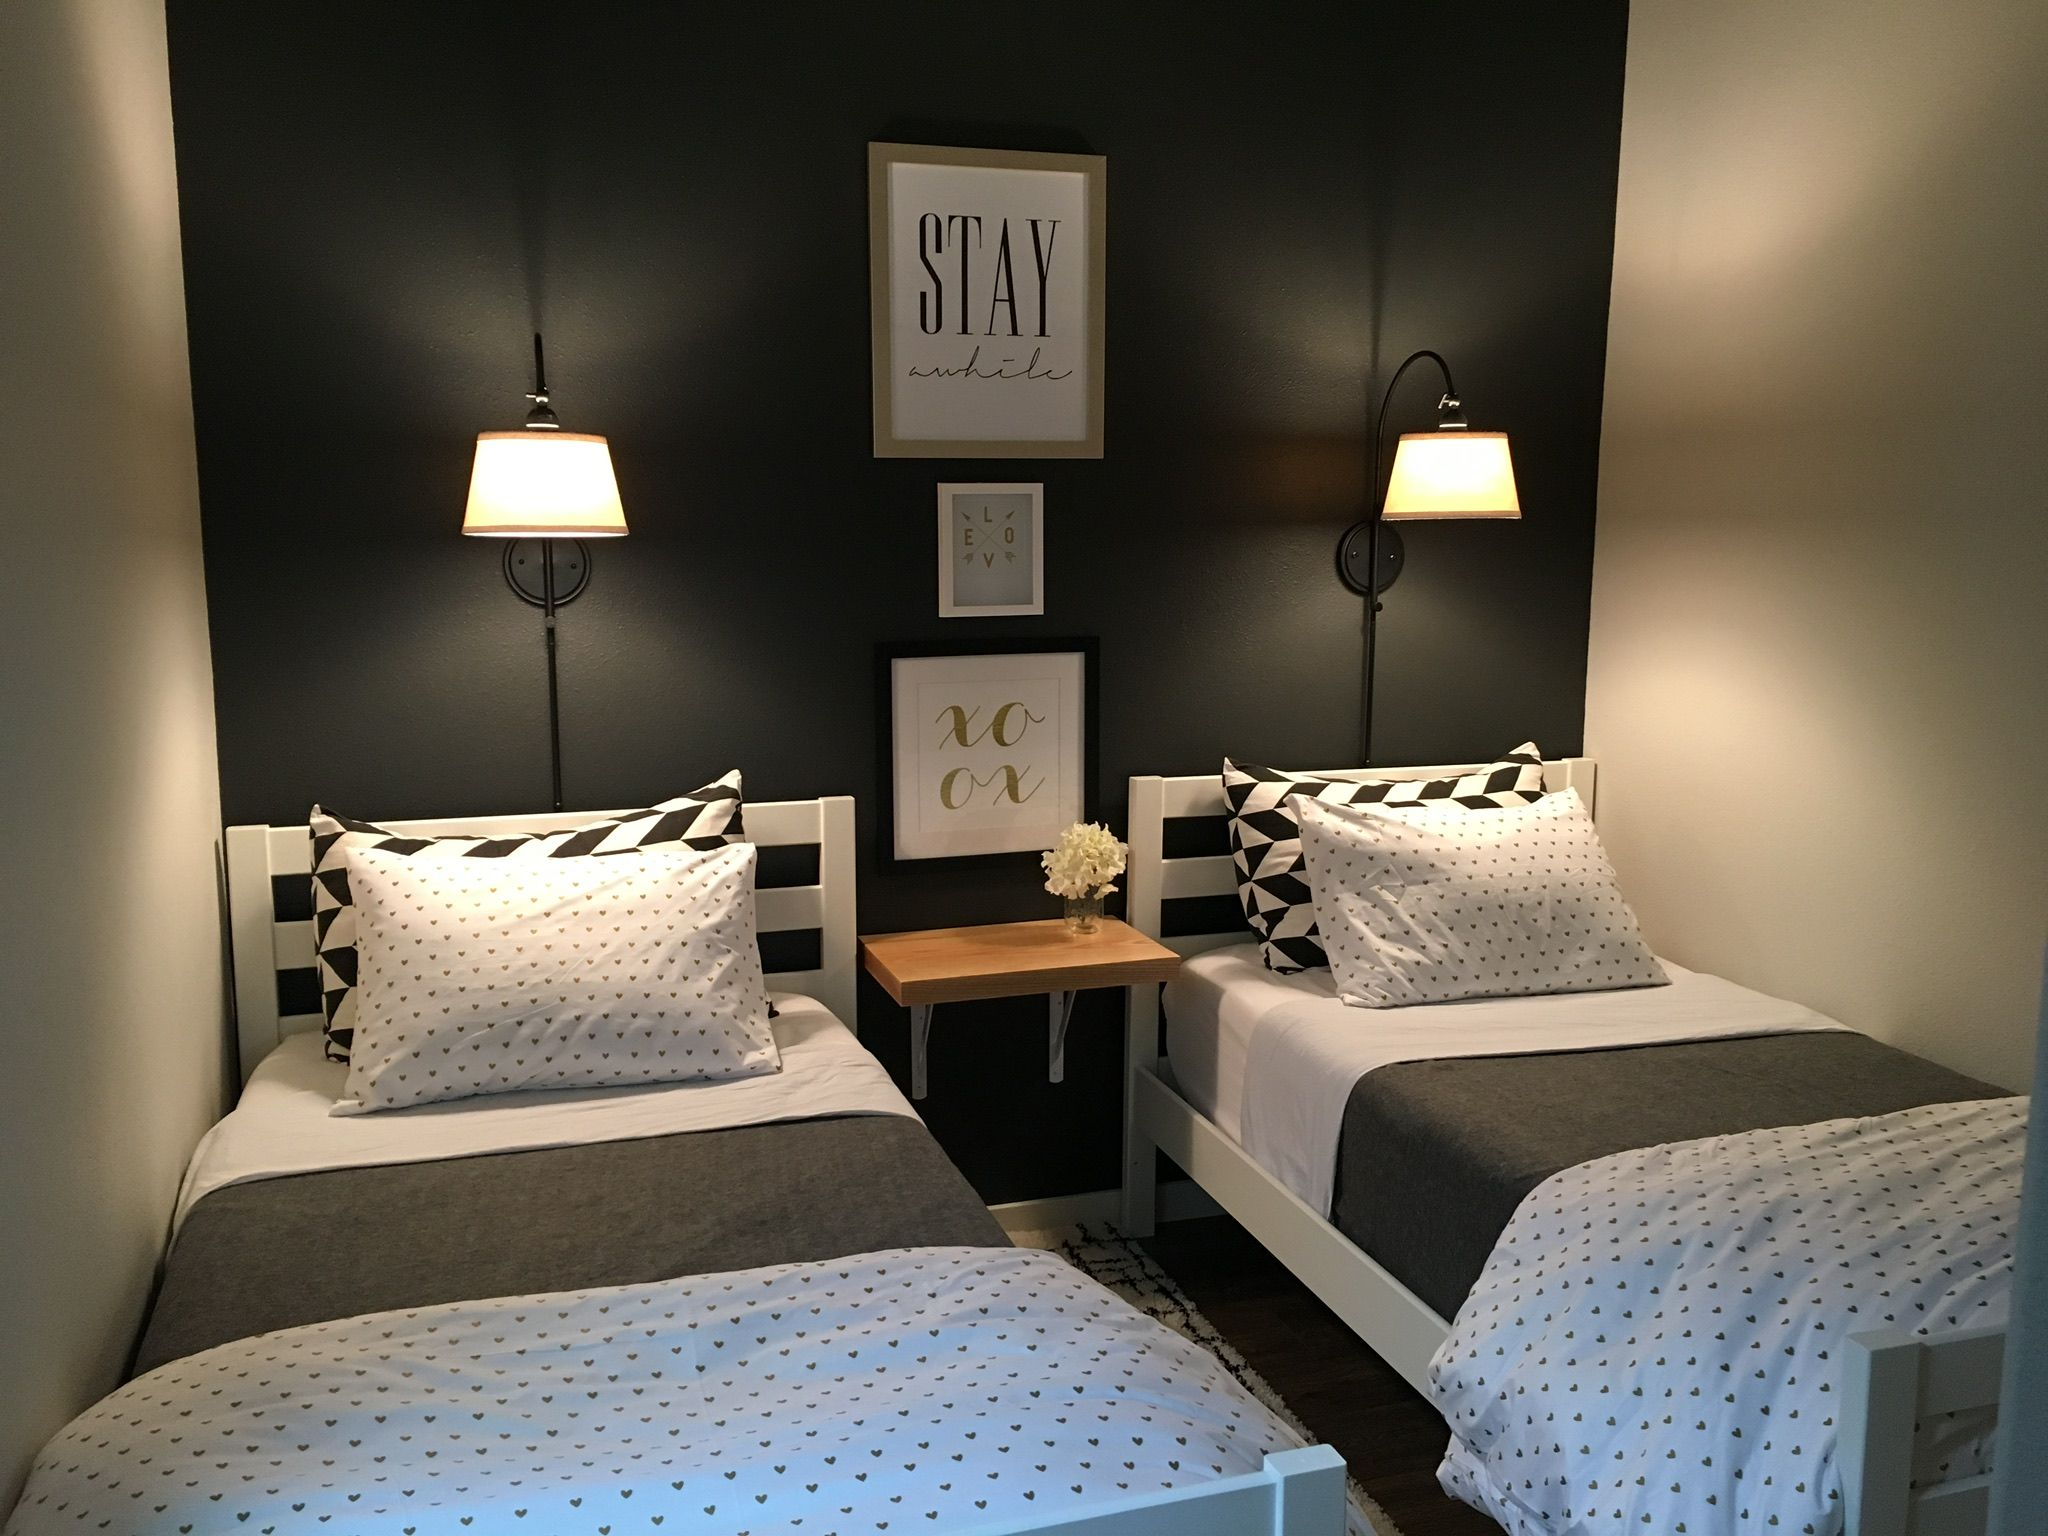 Best Kitchen Gallery: Small Guest Room With Two Twin Beds … Pinteres… of Room Ideas For Small Rooms  on rachelxblog.com